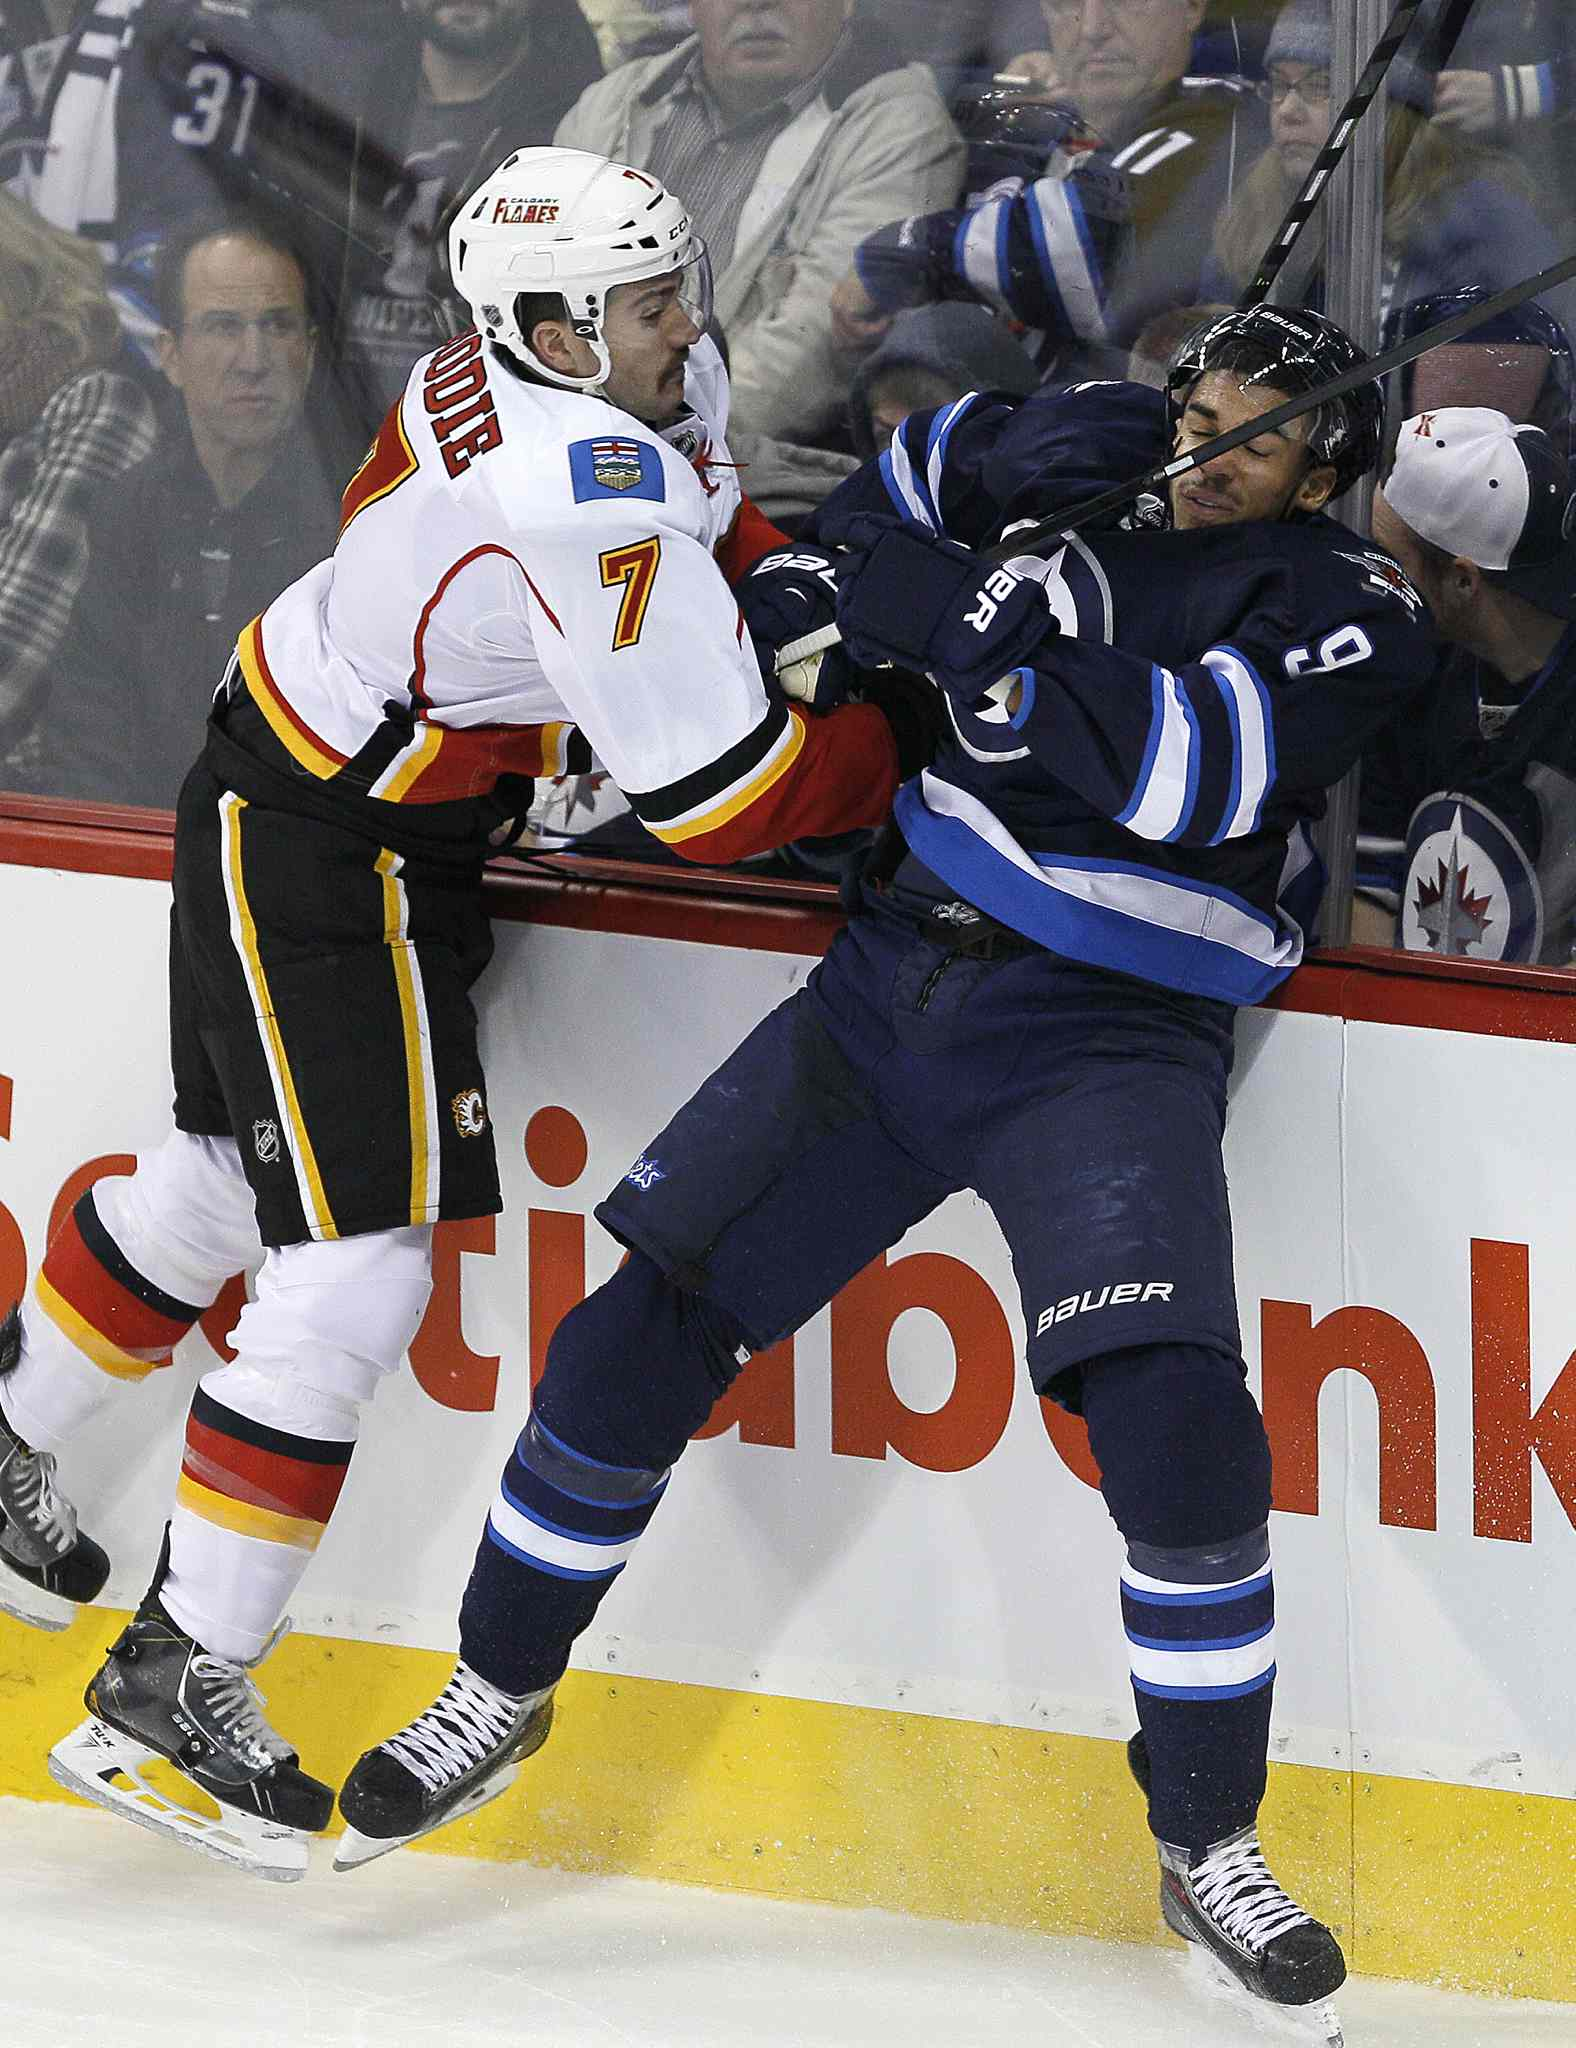 Winnipeg Jets' Evander Kane (9) misses the check on Calgary Flames' TJ Brodie (7) during first period NHL action in Winnipeg on Monday, Nov. 18, 2013.